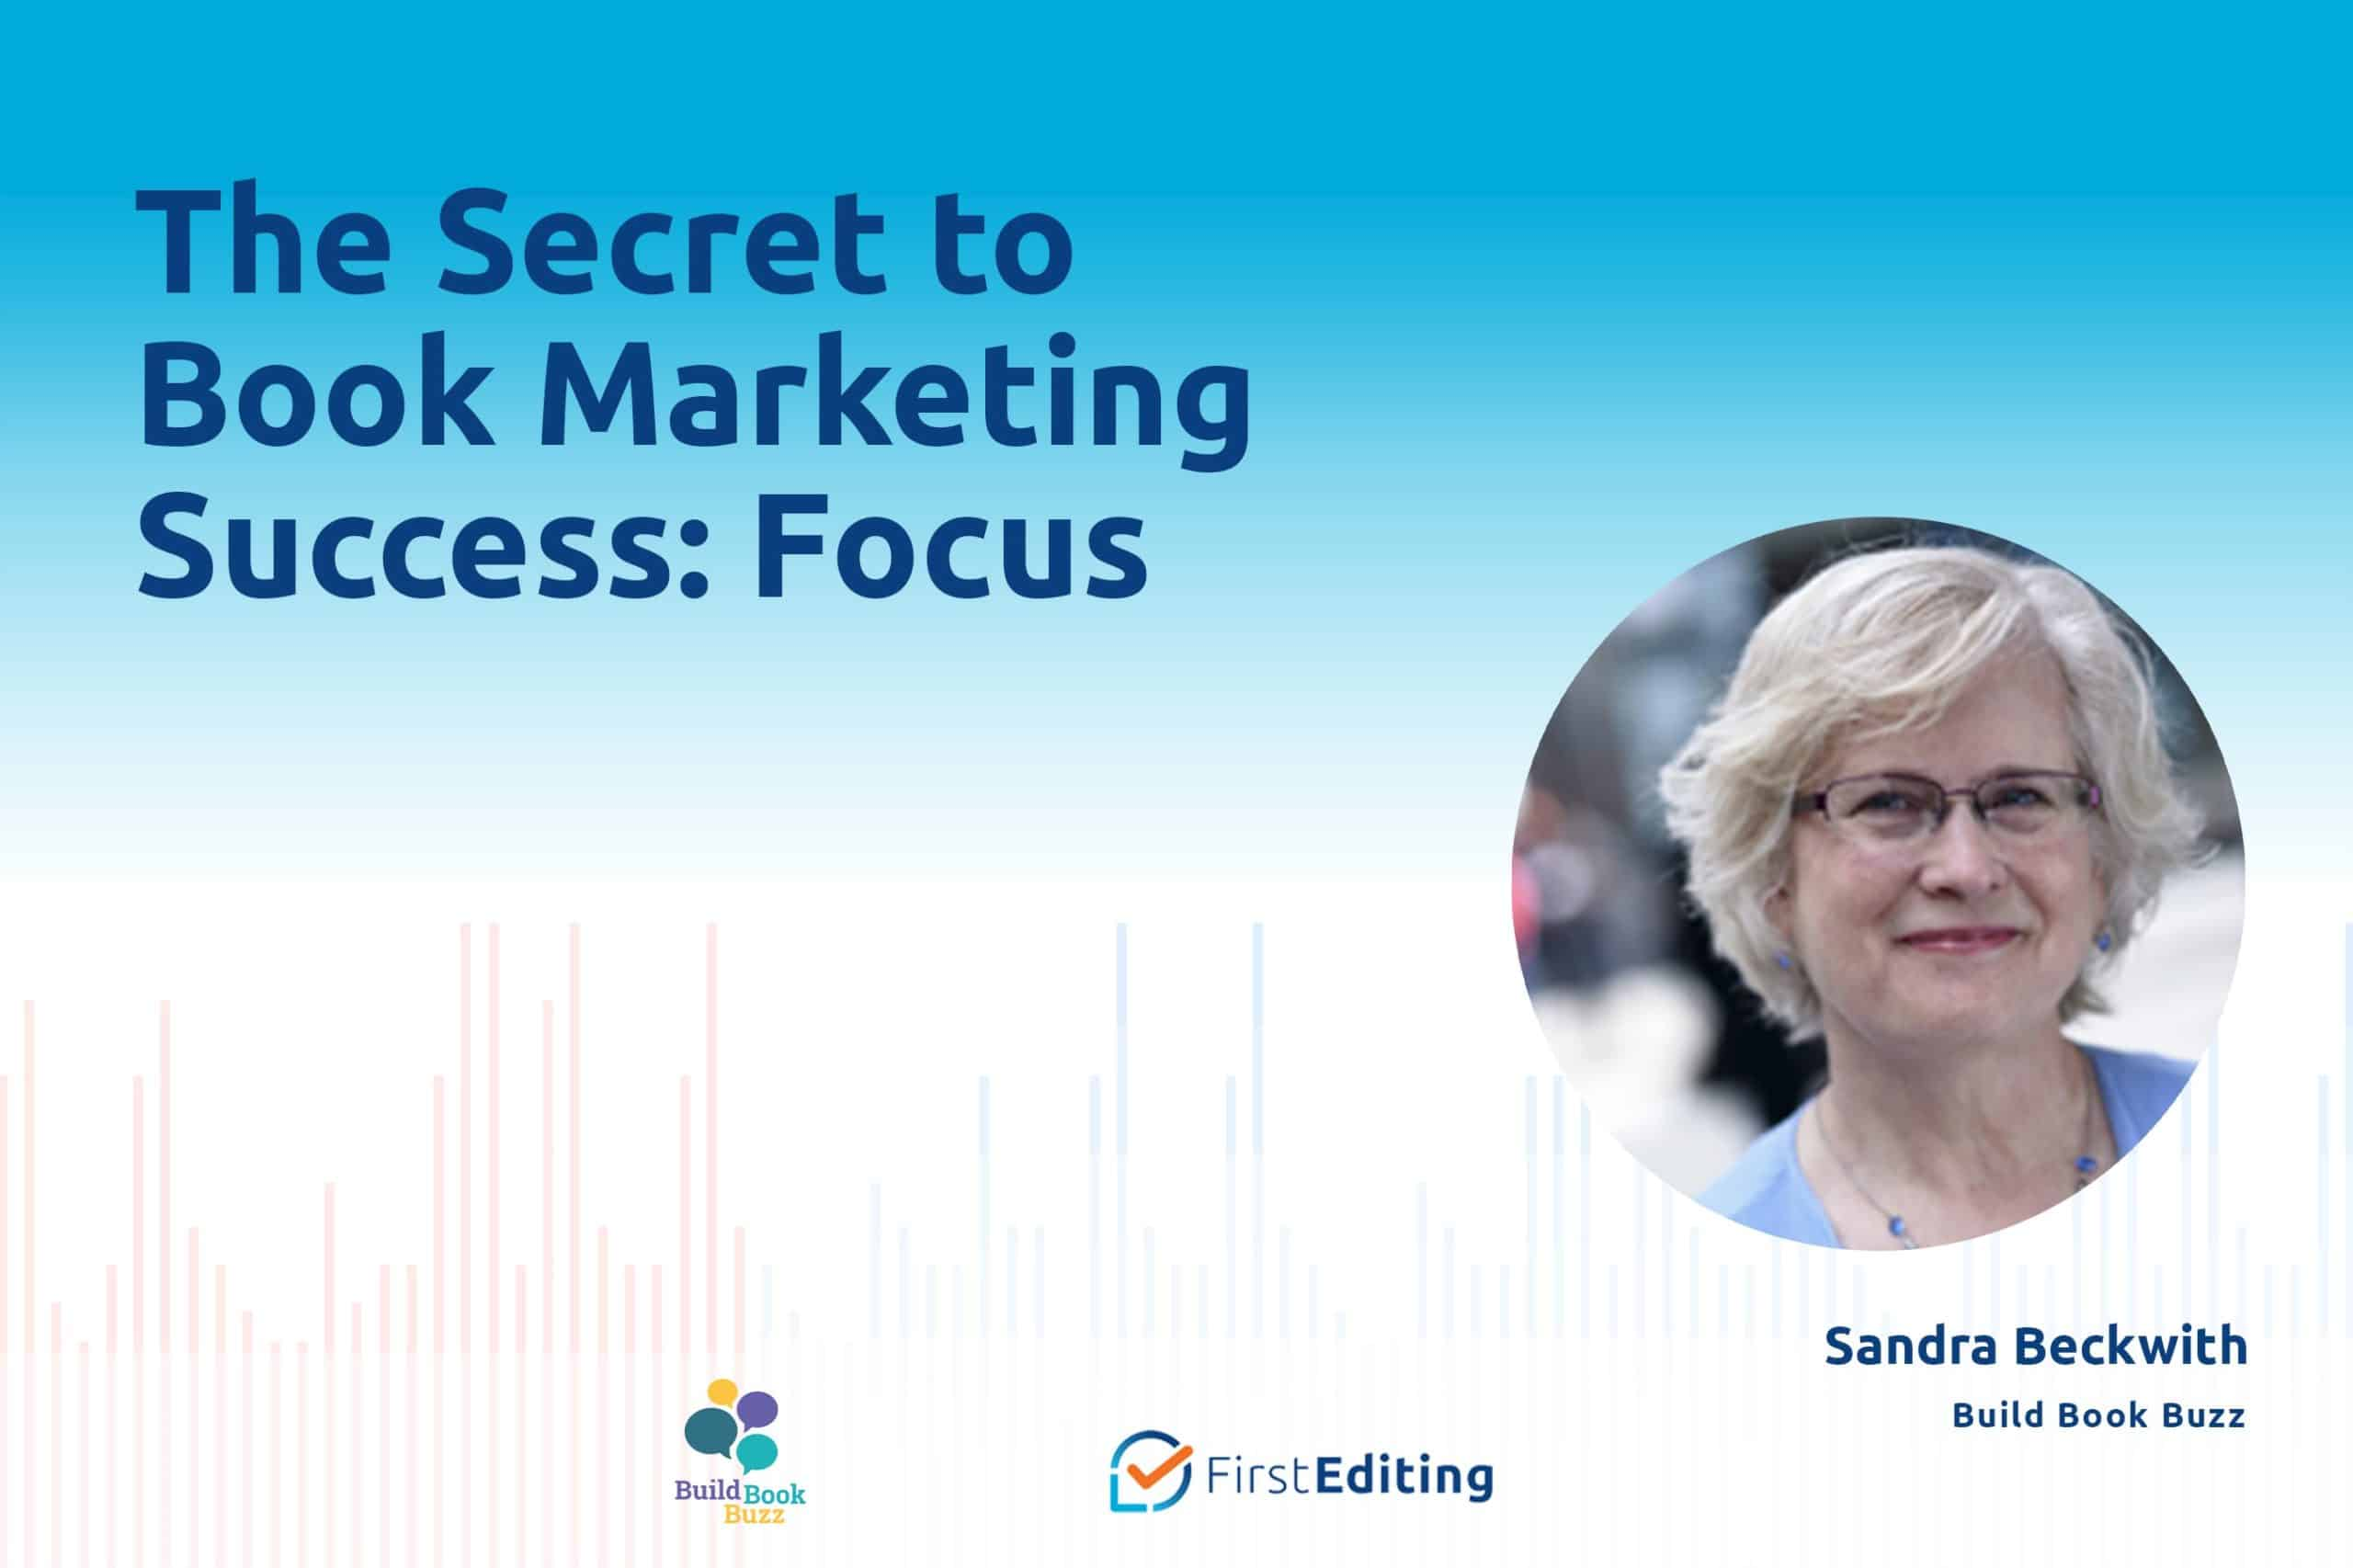 The Secret to Book Marketing Success: Focus with Sandra Beckwith